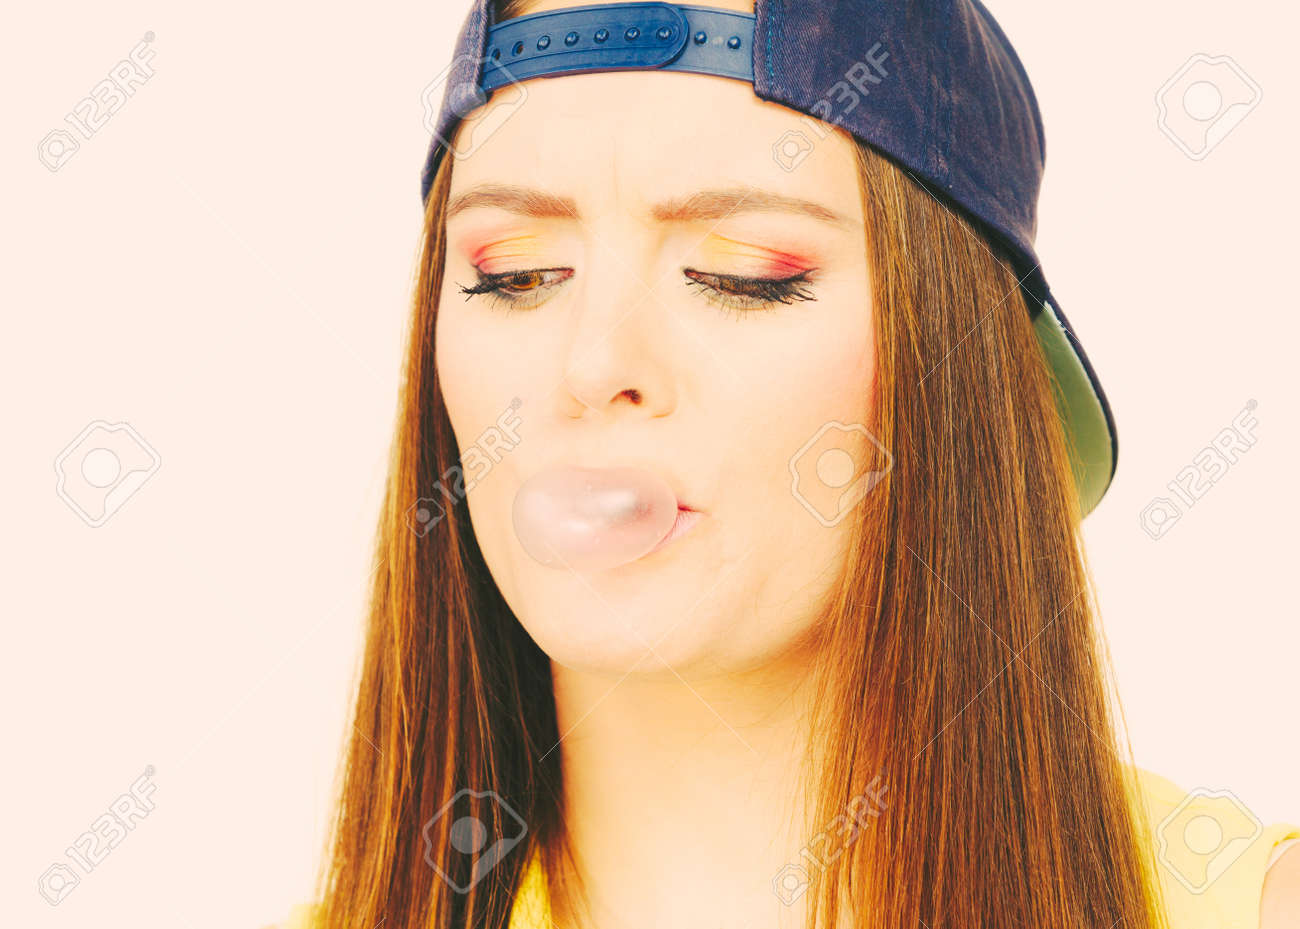 Woman casual style teen girl cap on head colorful makeup doing